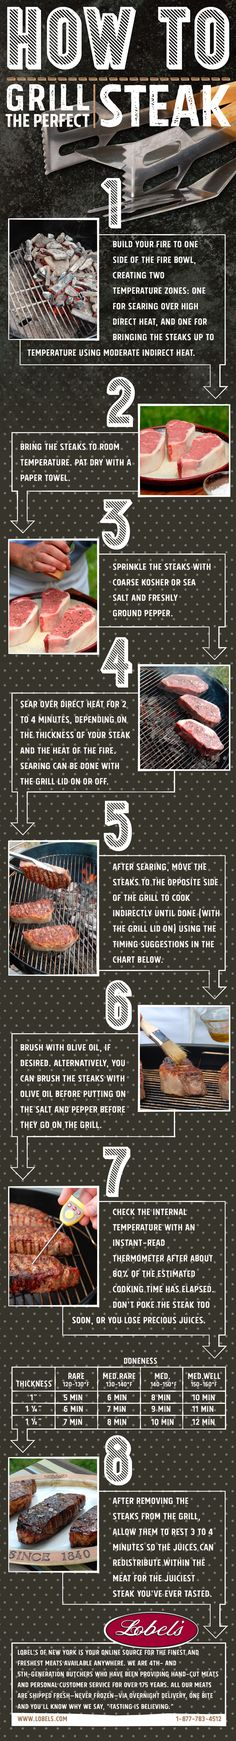 Do you know how to grill the perfect steak? Let America's family of butchers show you how using the indirect-heat method. Summer Grilling Recipes, Grilling Tips, Barbecue Recipes, Meat Recipes, Recipies, Grilling The Perfect Steak, How To Grill Steak, Bbq Grill, Steaks